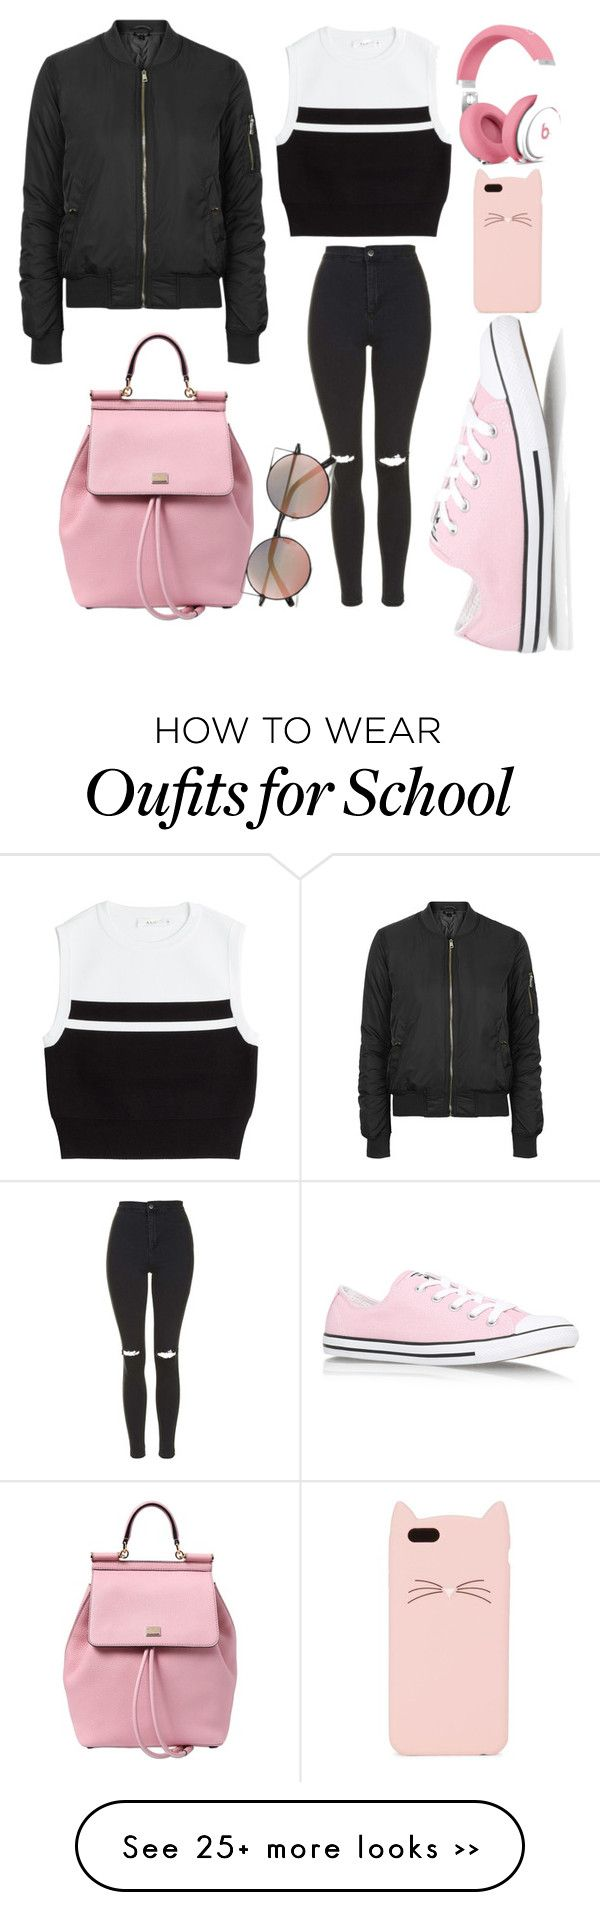 """Back to school"" by anaisonedirection on Polyvore featuring Topshop, Dolce&Gabbana, A.L.C., Converse, Kate Spade and Linda Farrow"